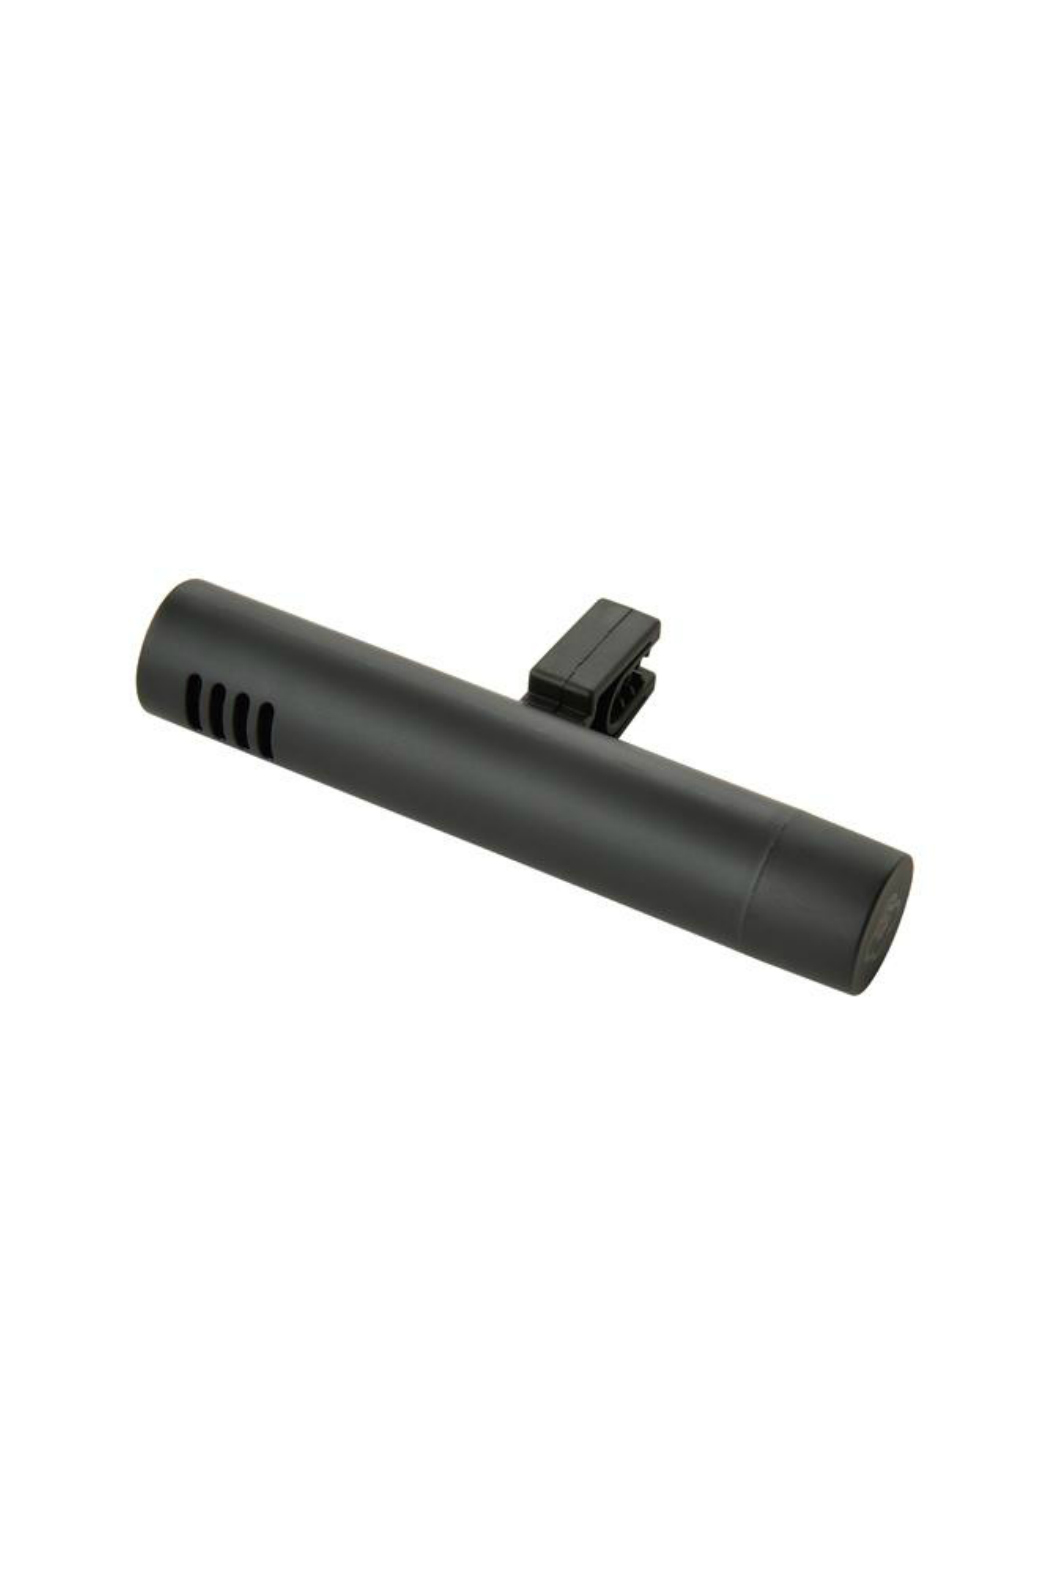 SERENE HOUSE CAR SCENT VENT CLIP  - BLACK - Main Image